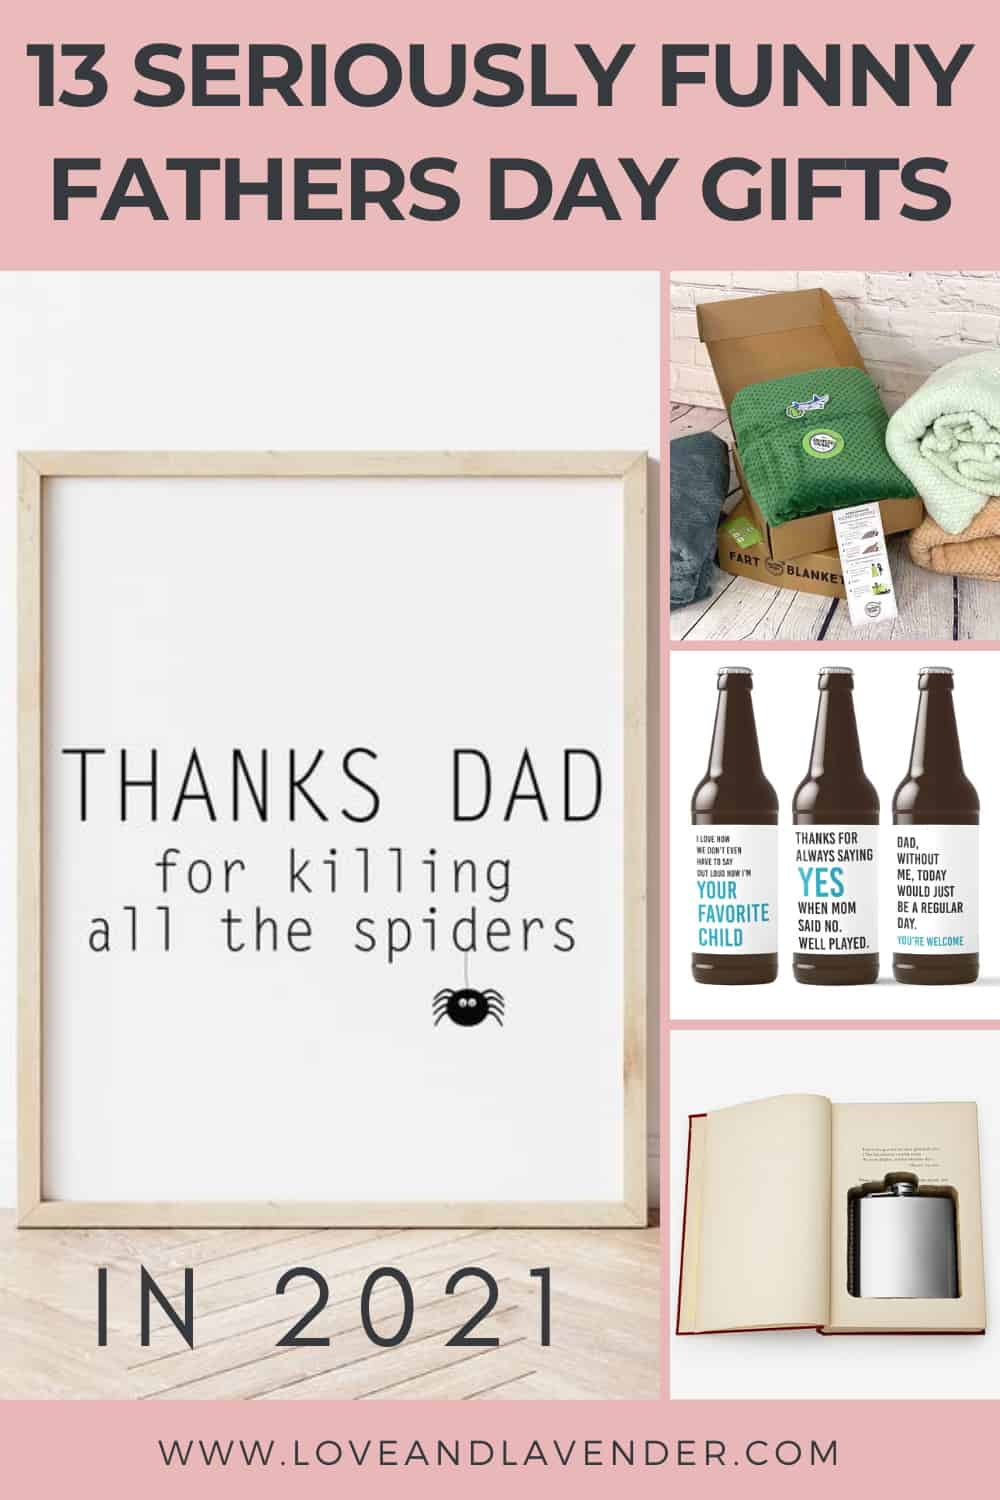 pinterest pin - funny father's day gifts